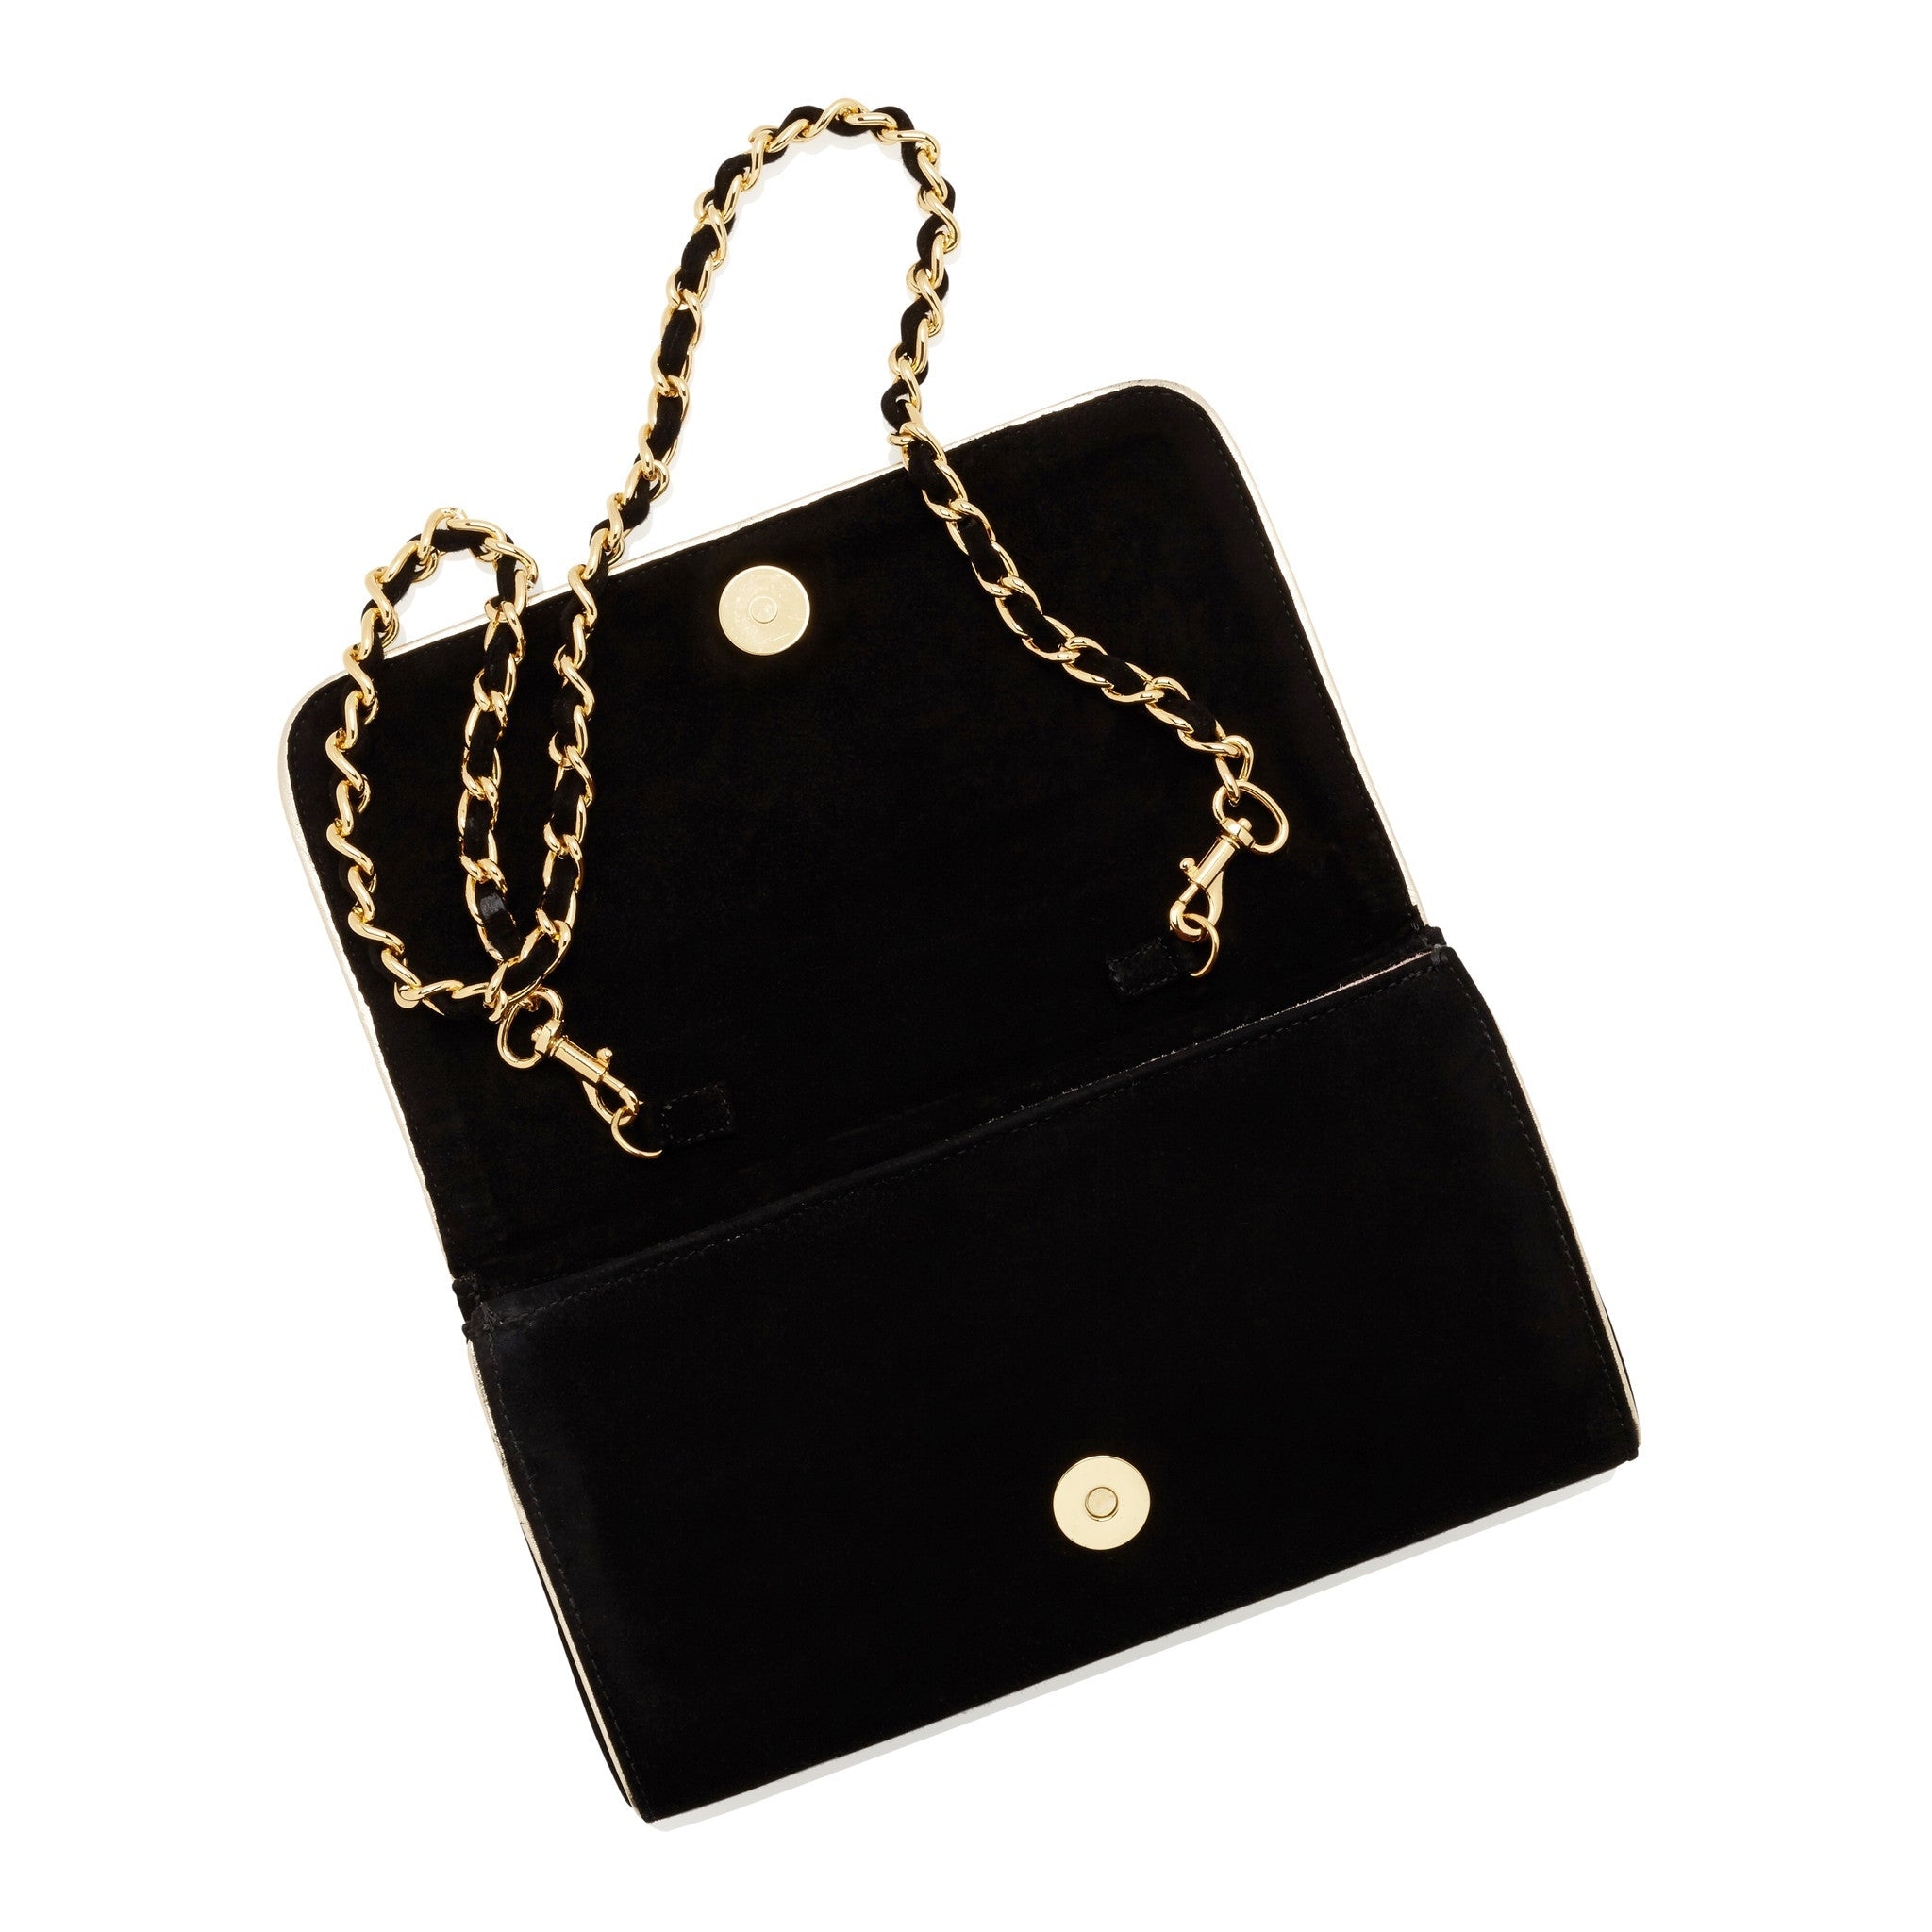 24971a6deb31 ... Emmy London Natasha Jet Black Clutch Bag with Gold Chain Strap ...